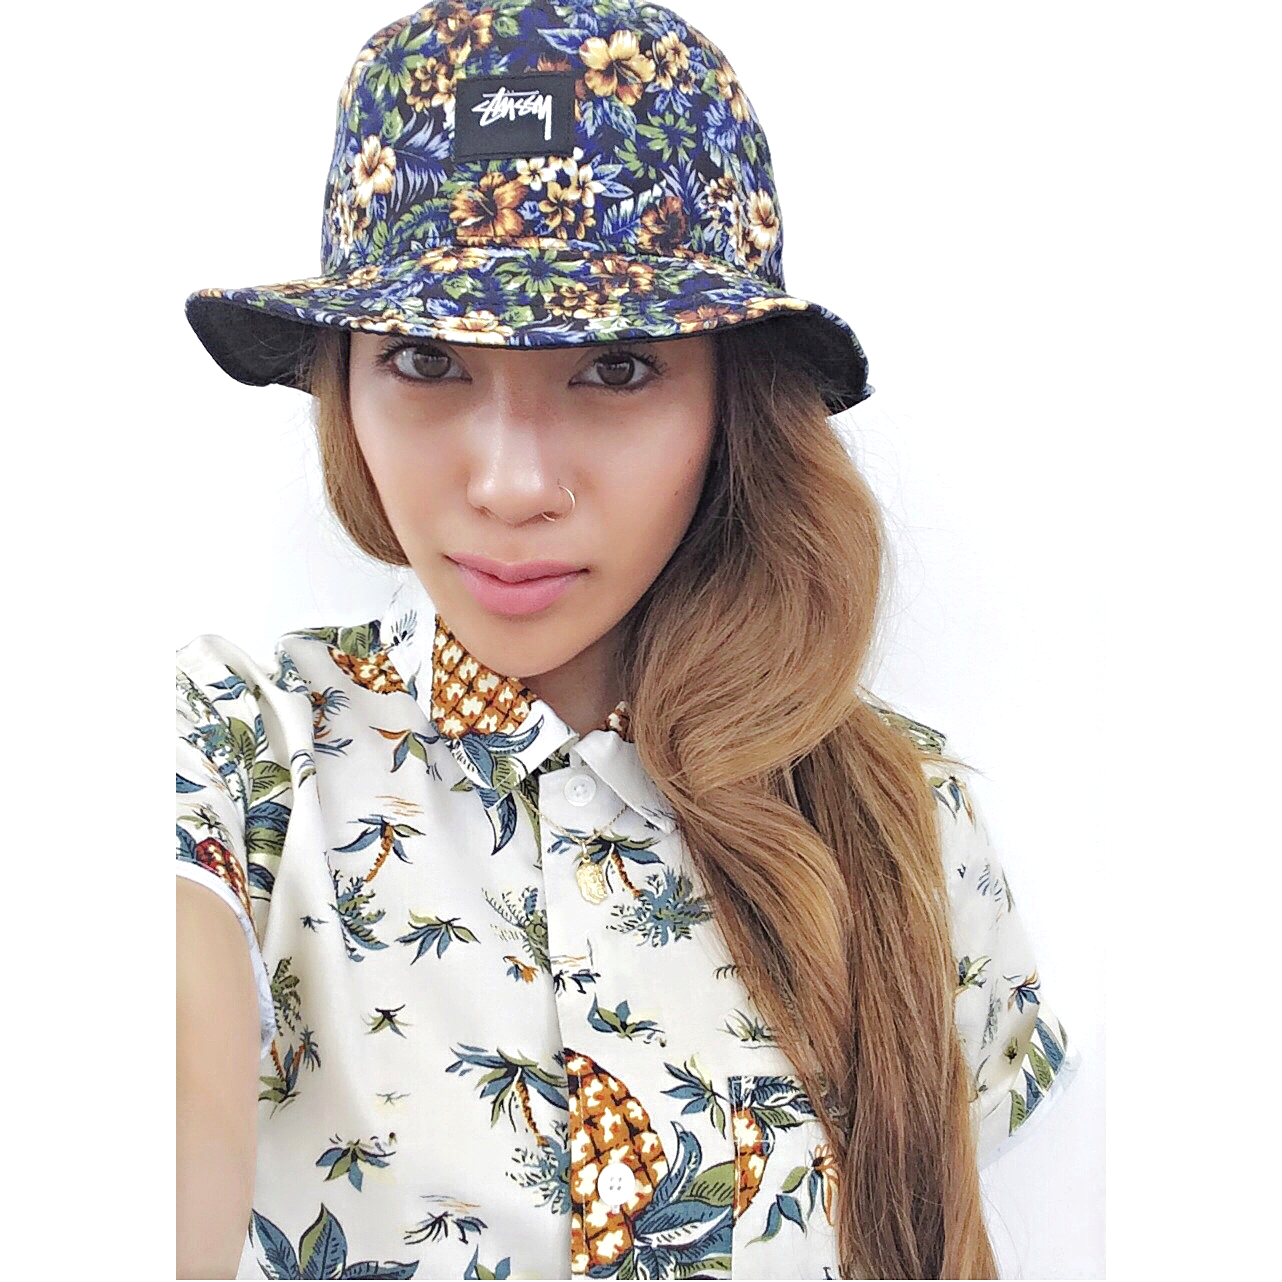 ISLAND REVERSIBLE BUCKET HAT    DELUXE MEN'S PINEAPPLE SHIRT